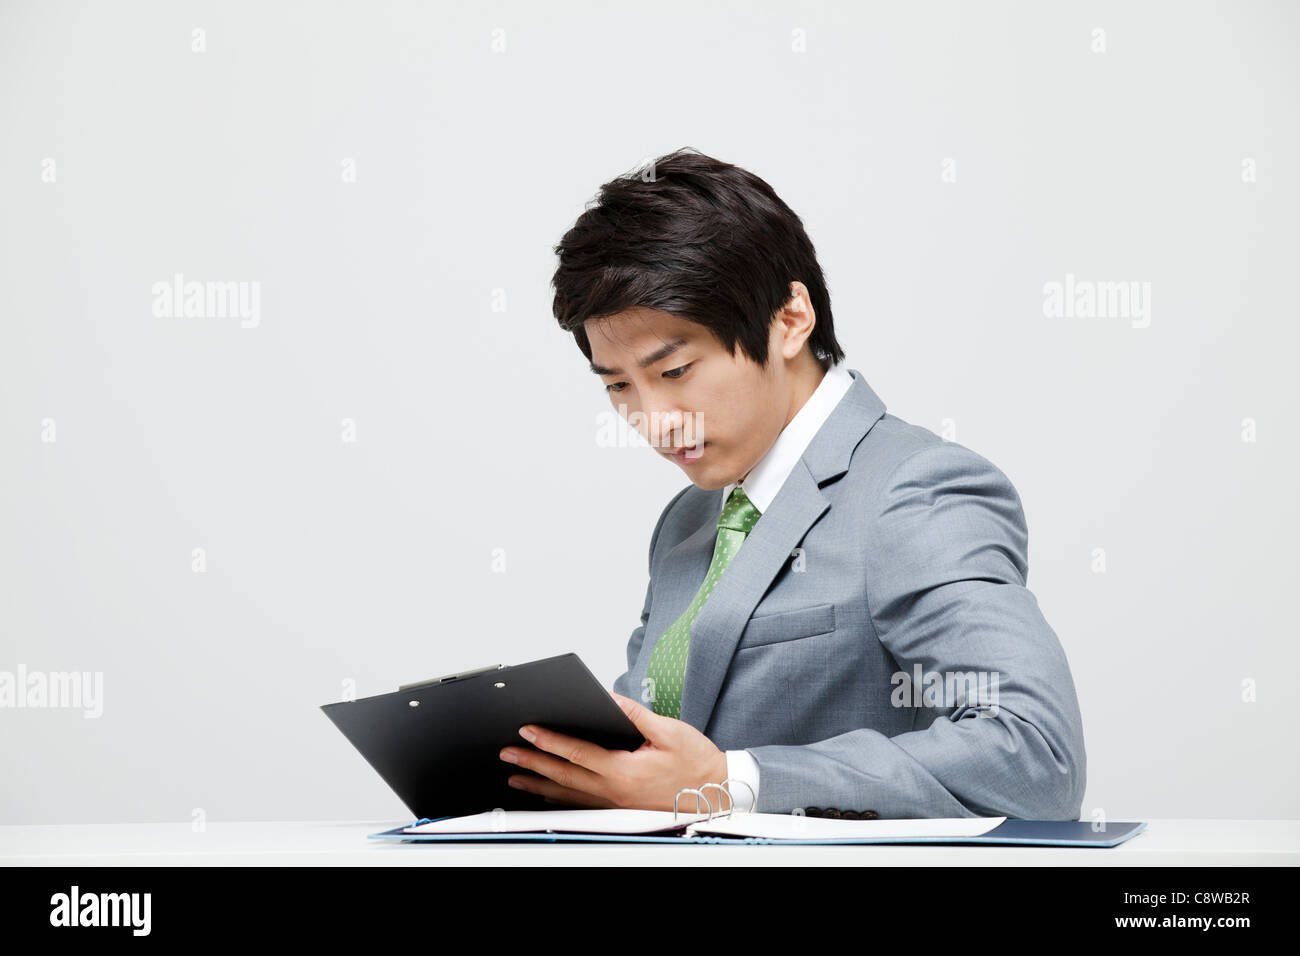 Asian Businessman Looking At Office Document - Stock Image